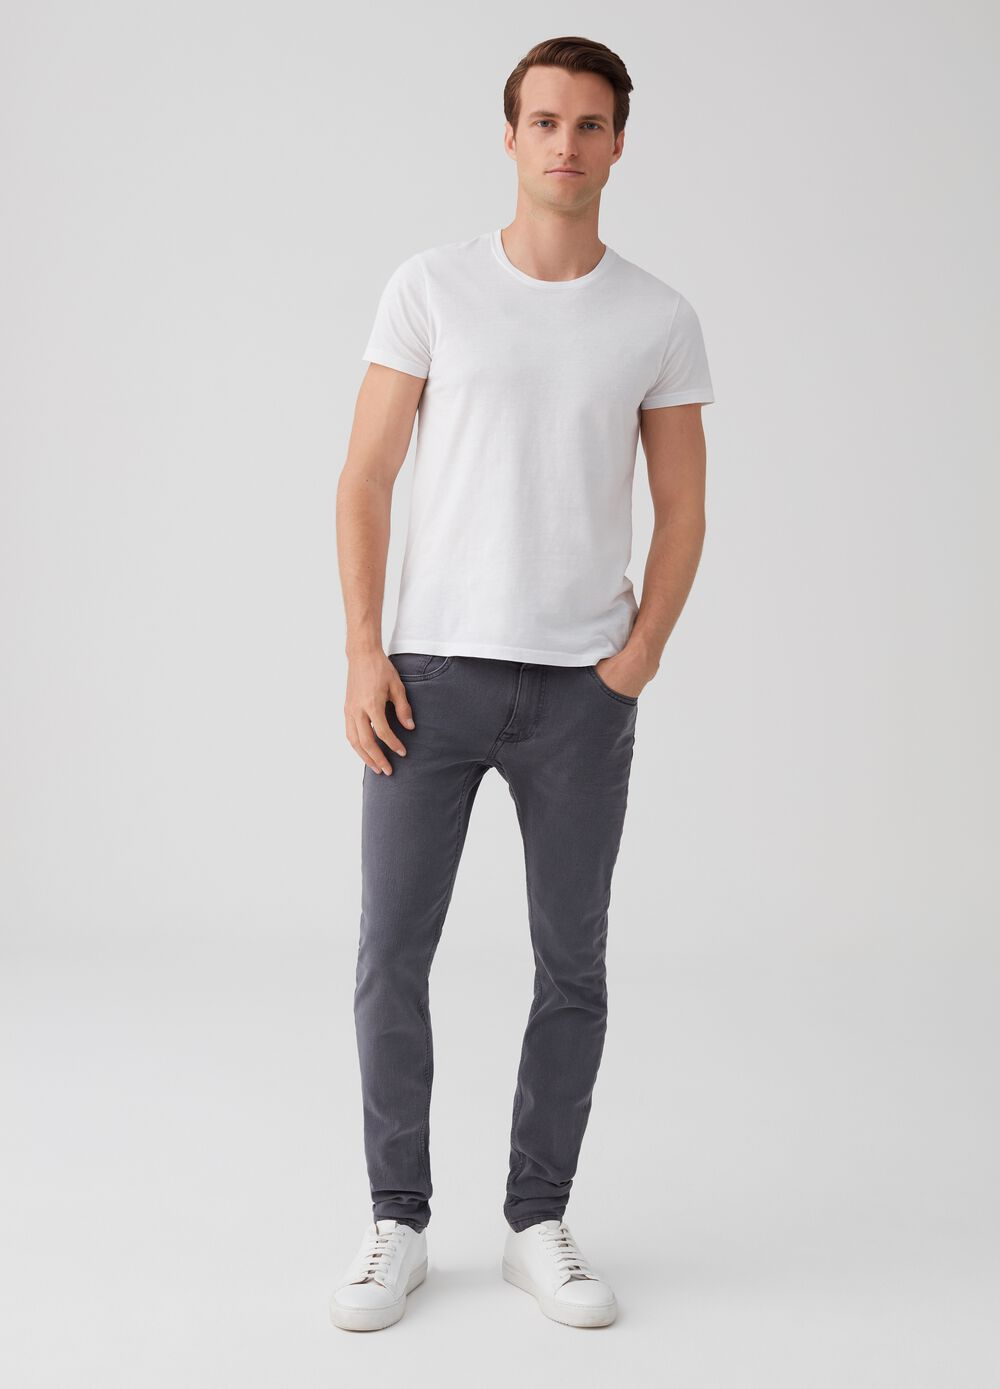 Super-skinny jeans with five pockets